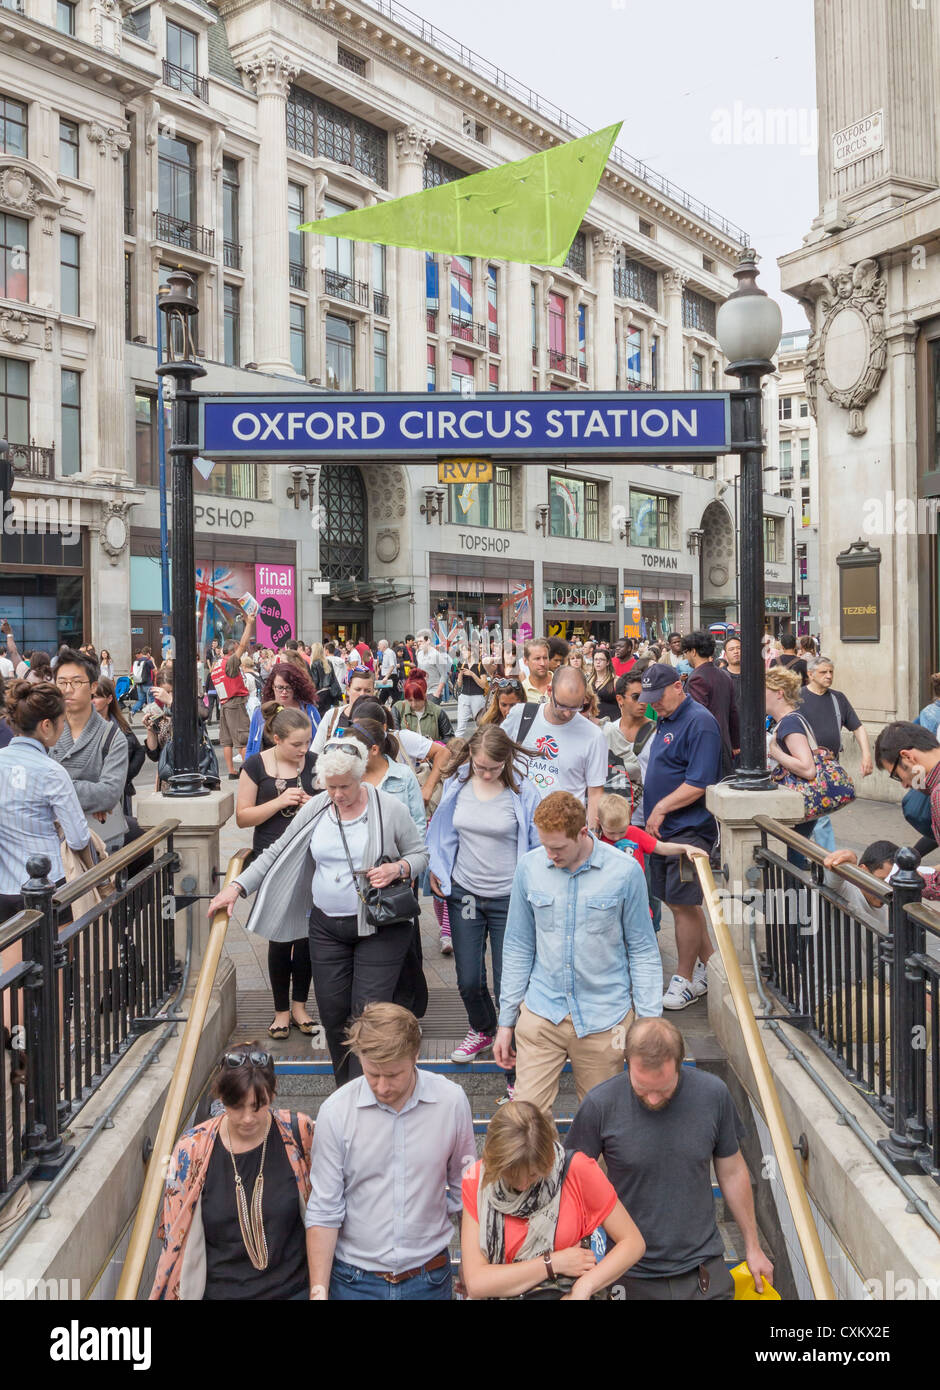 Oxford Circus underground entrance at rush hour, London, England - Stock Image